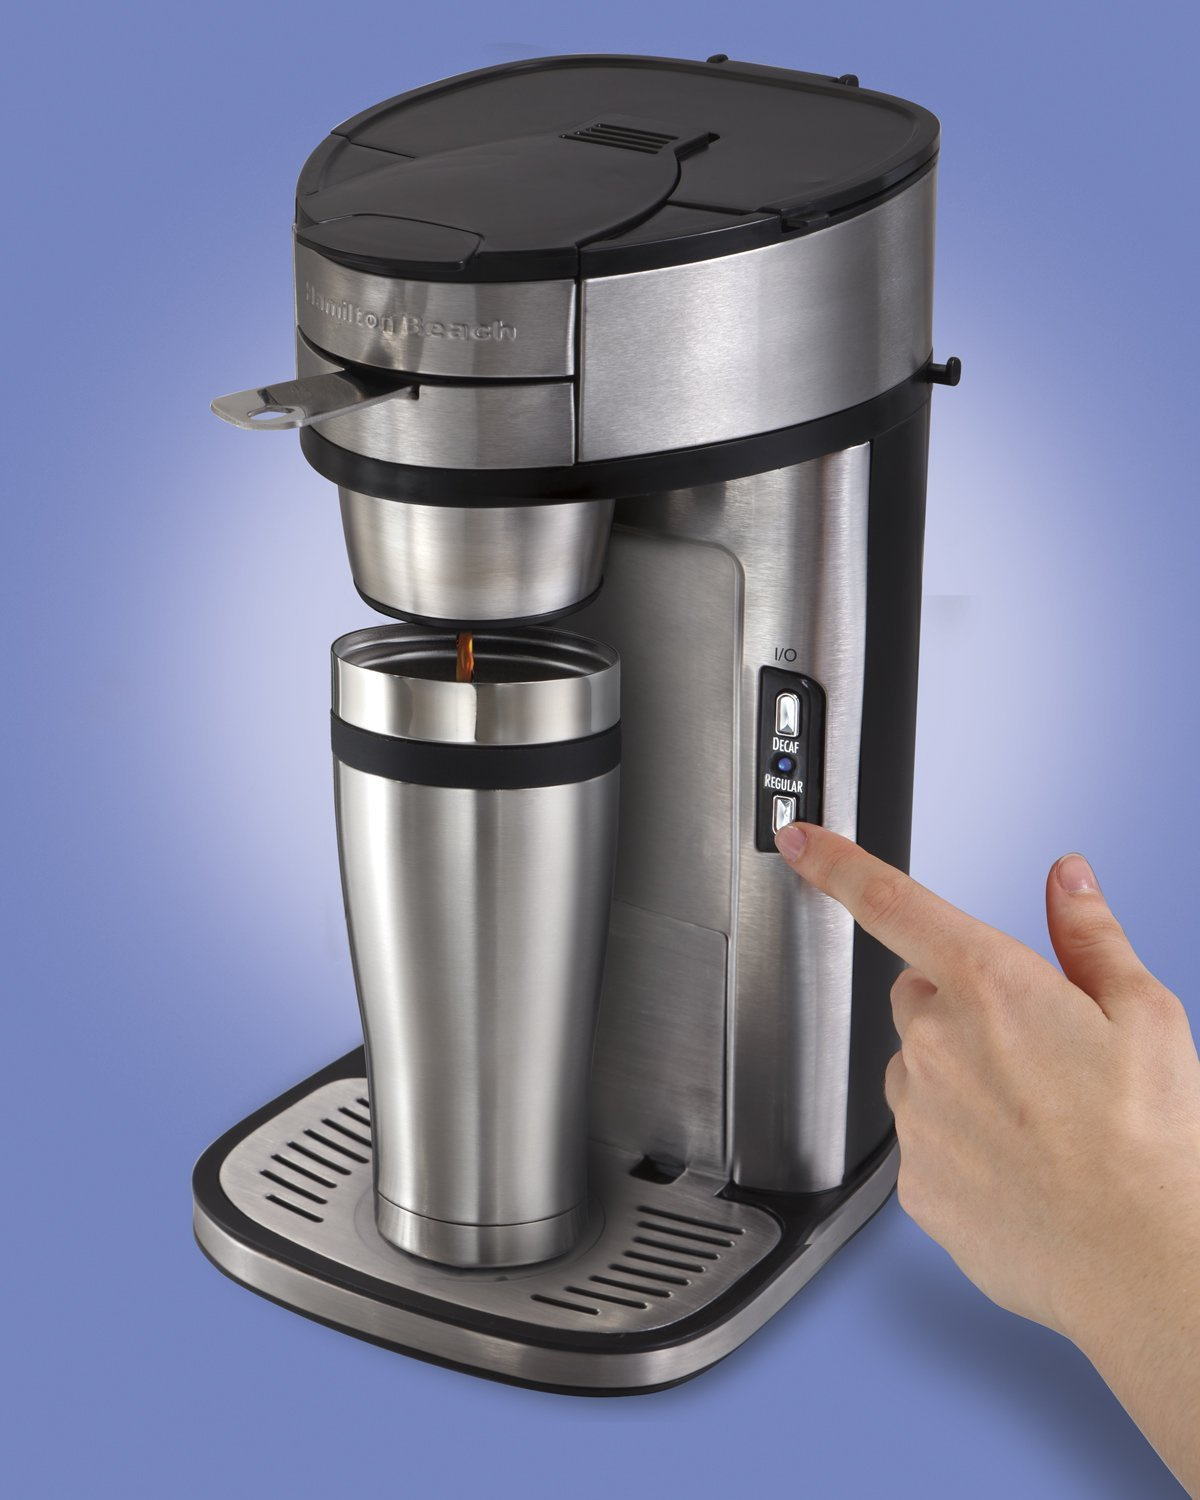 Flavia One Cup Coffee Maker : NEW! Fresh Coffee Maker 1 Cup Brewer by Hamilton Beach Fast Easy Clean Kitchen eBay